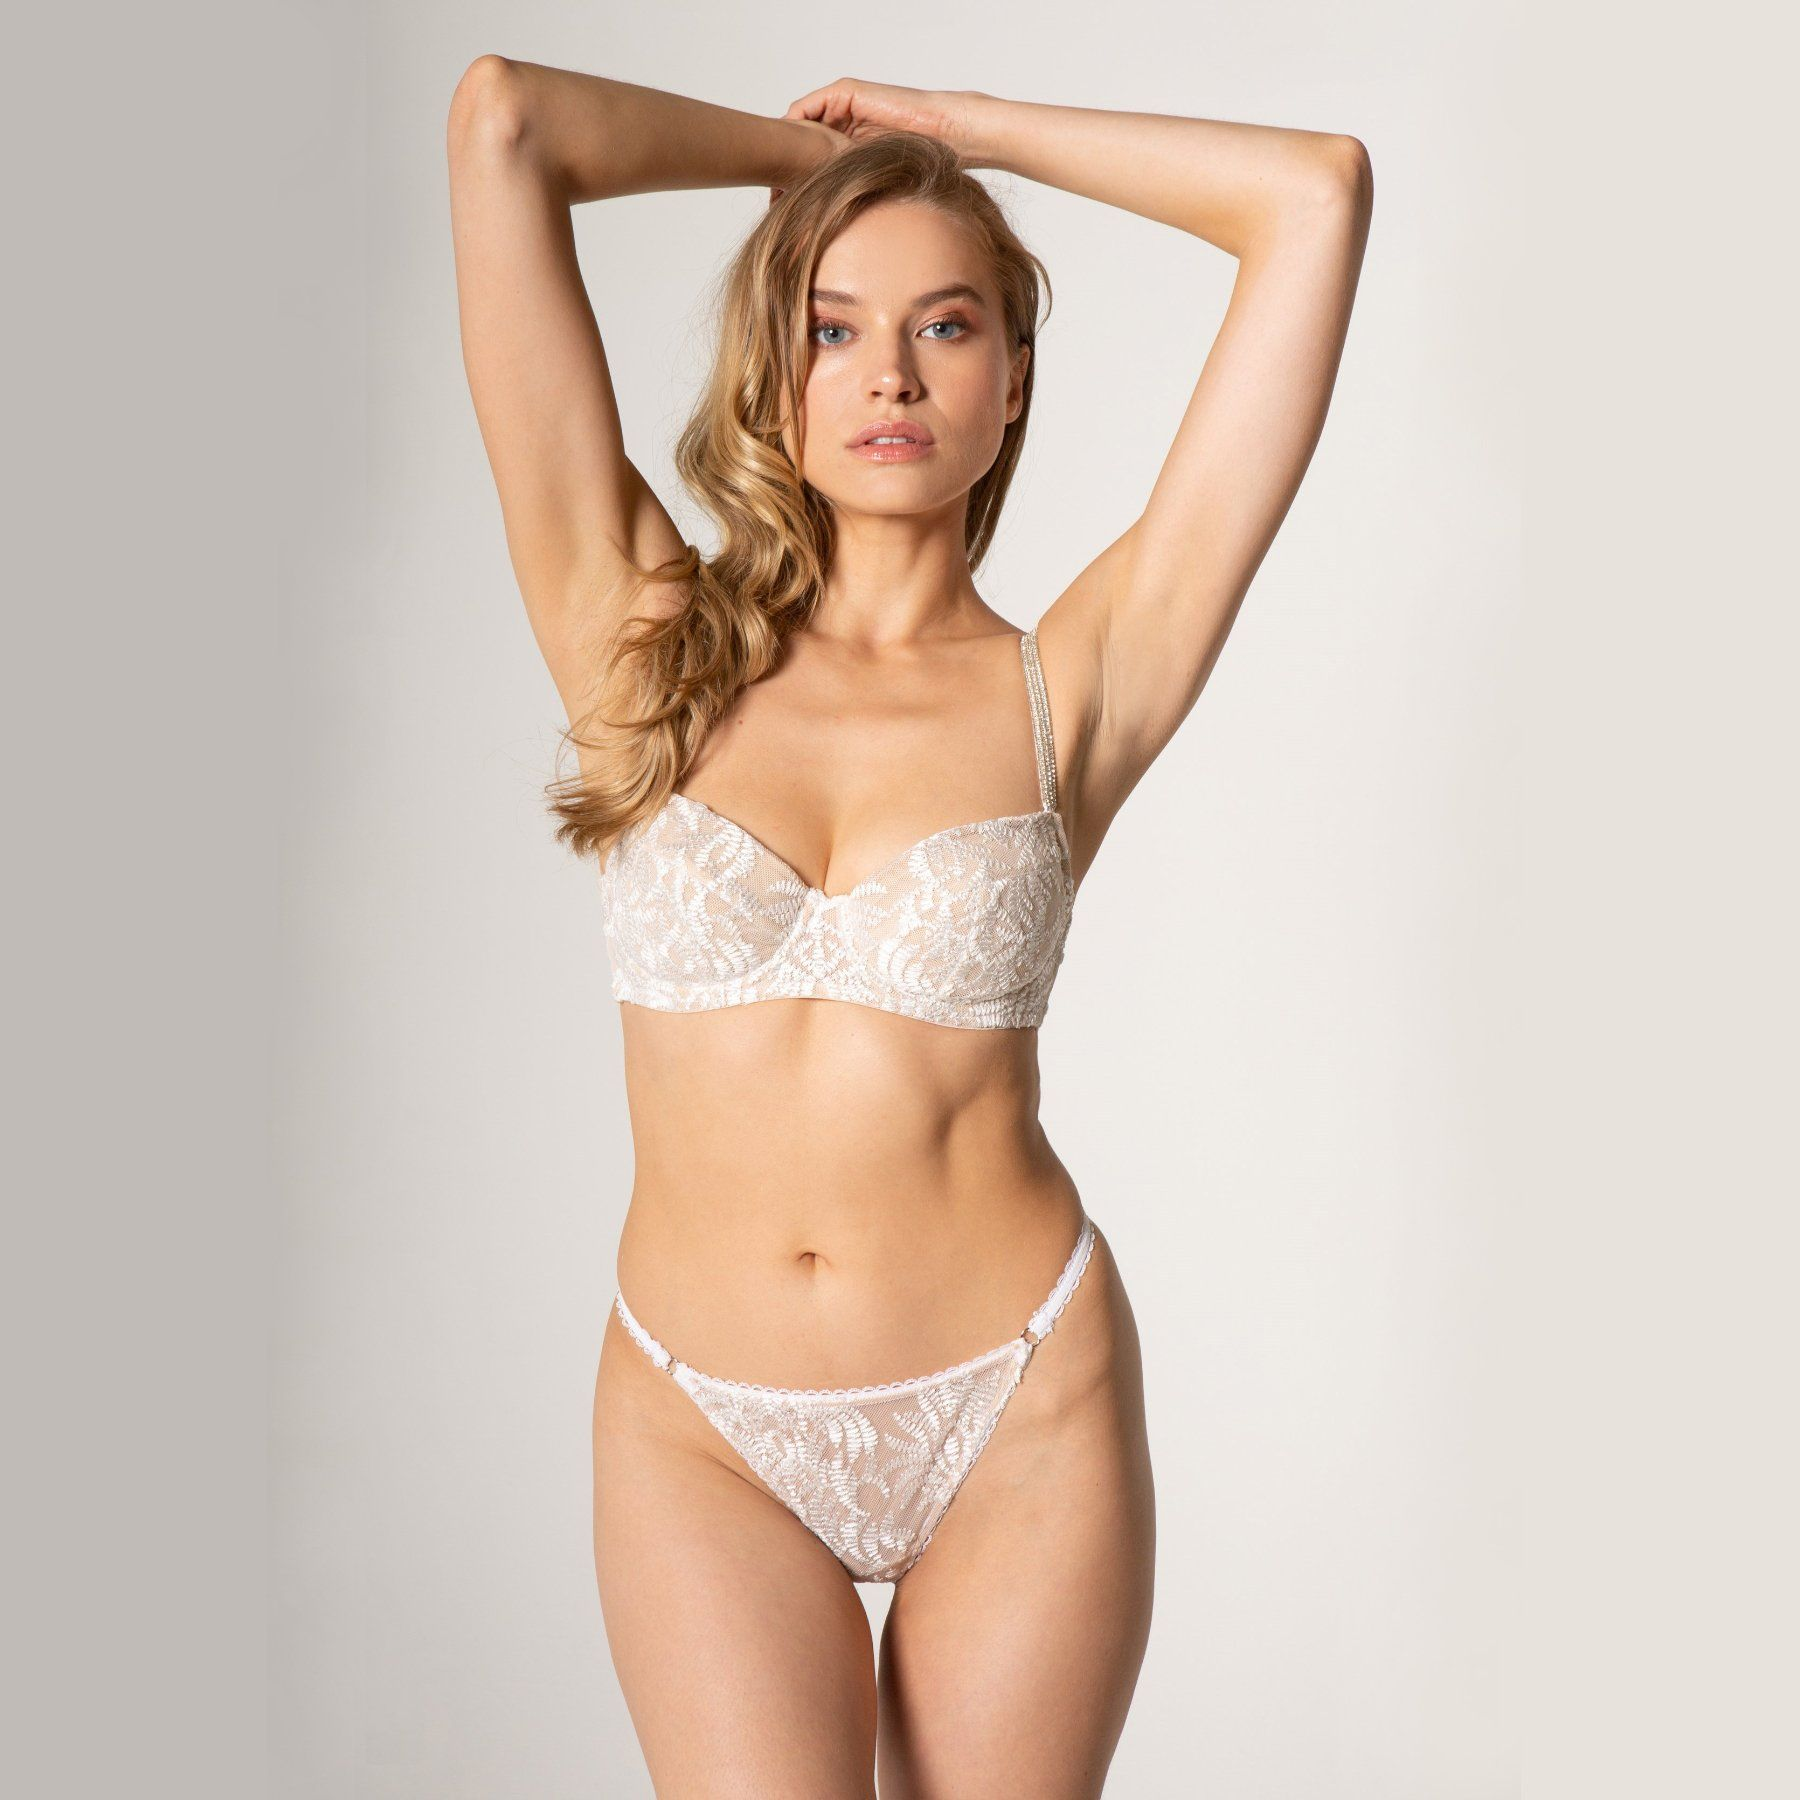 woman wearing white lace bra and panty